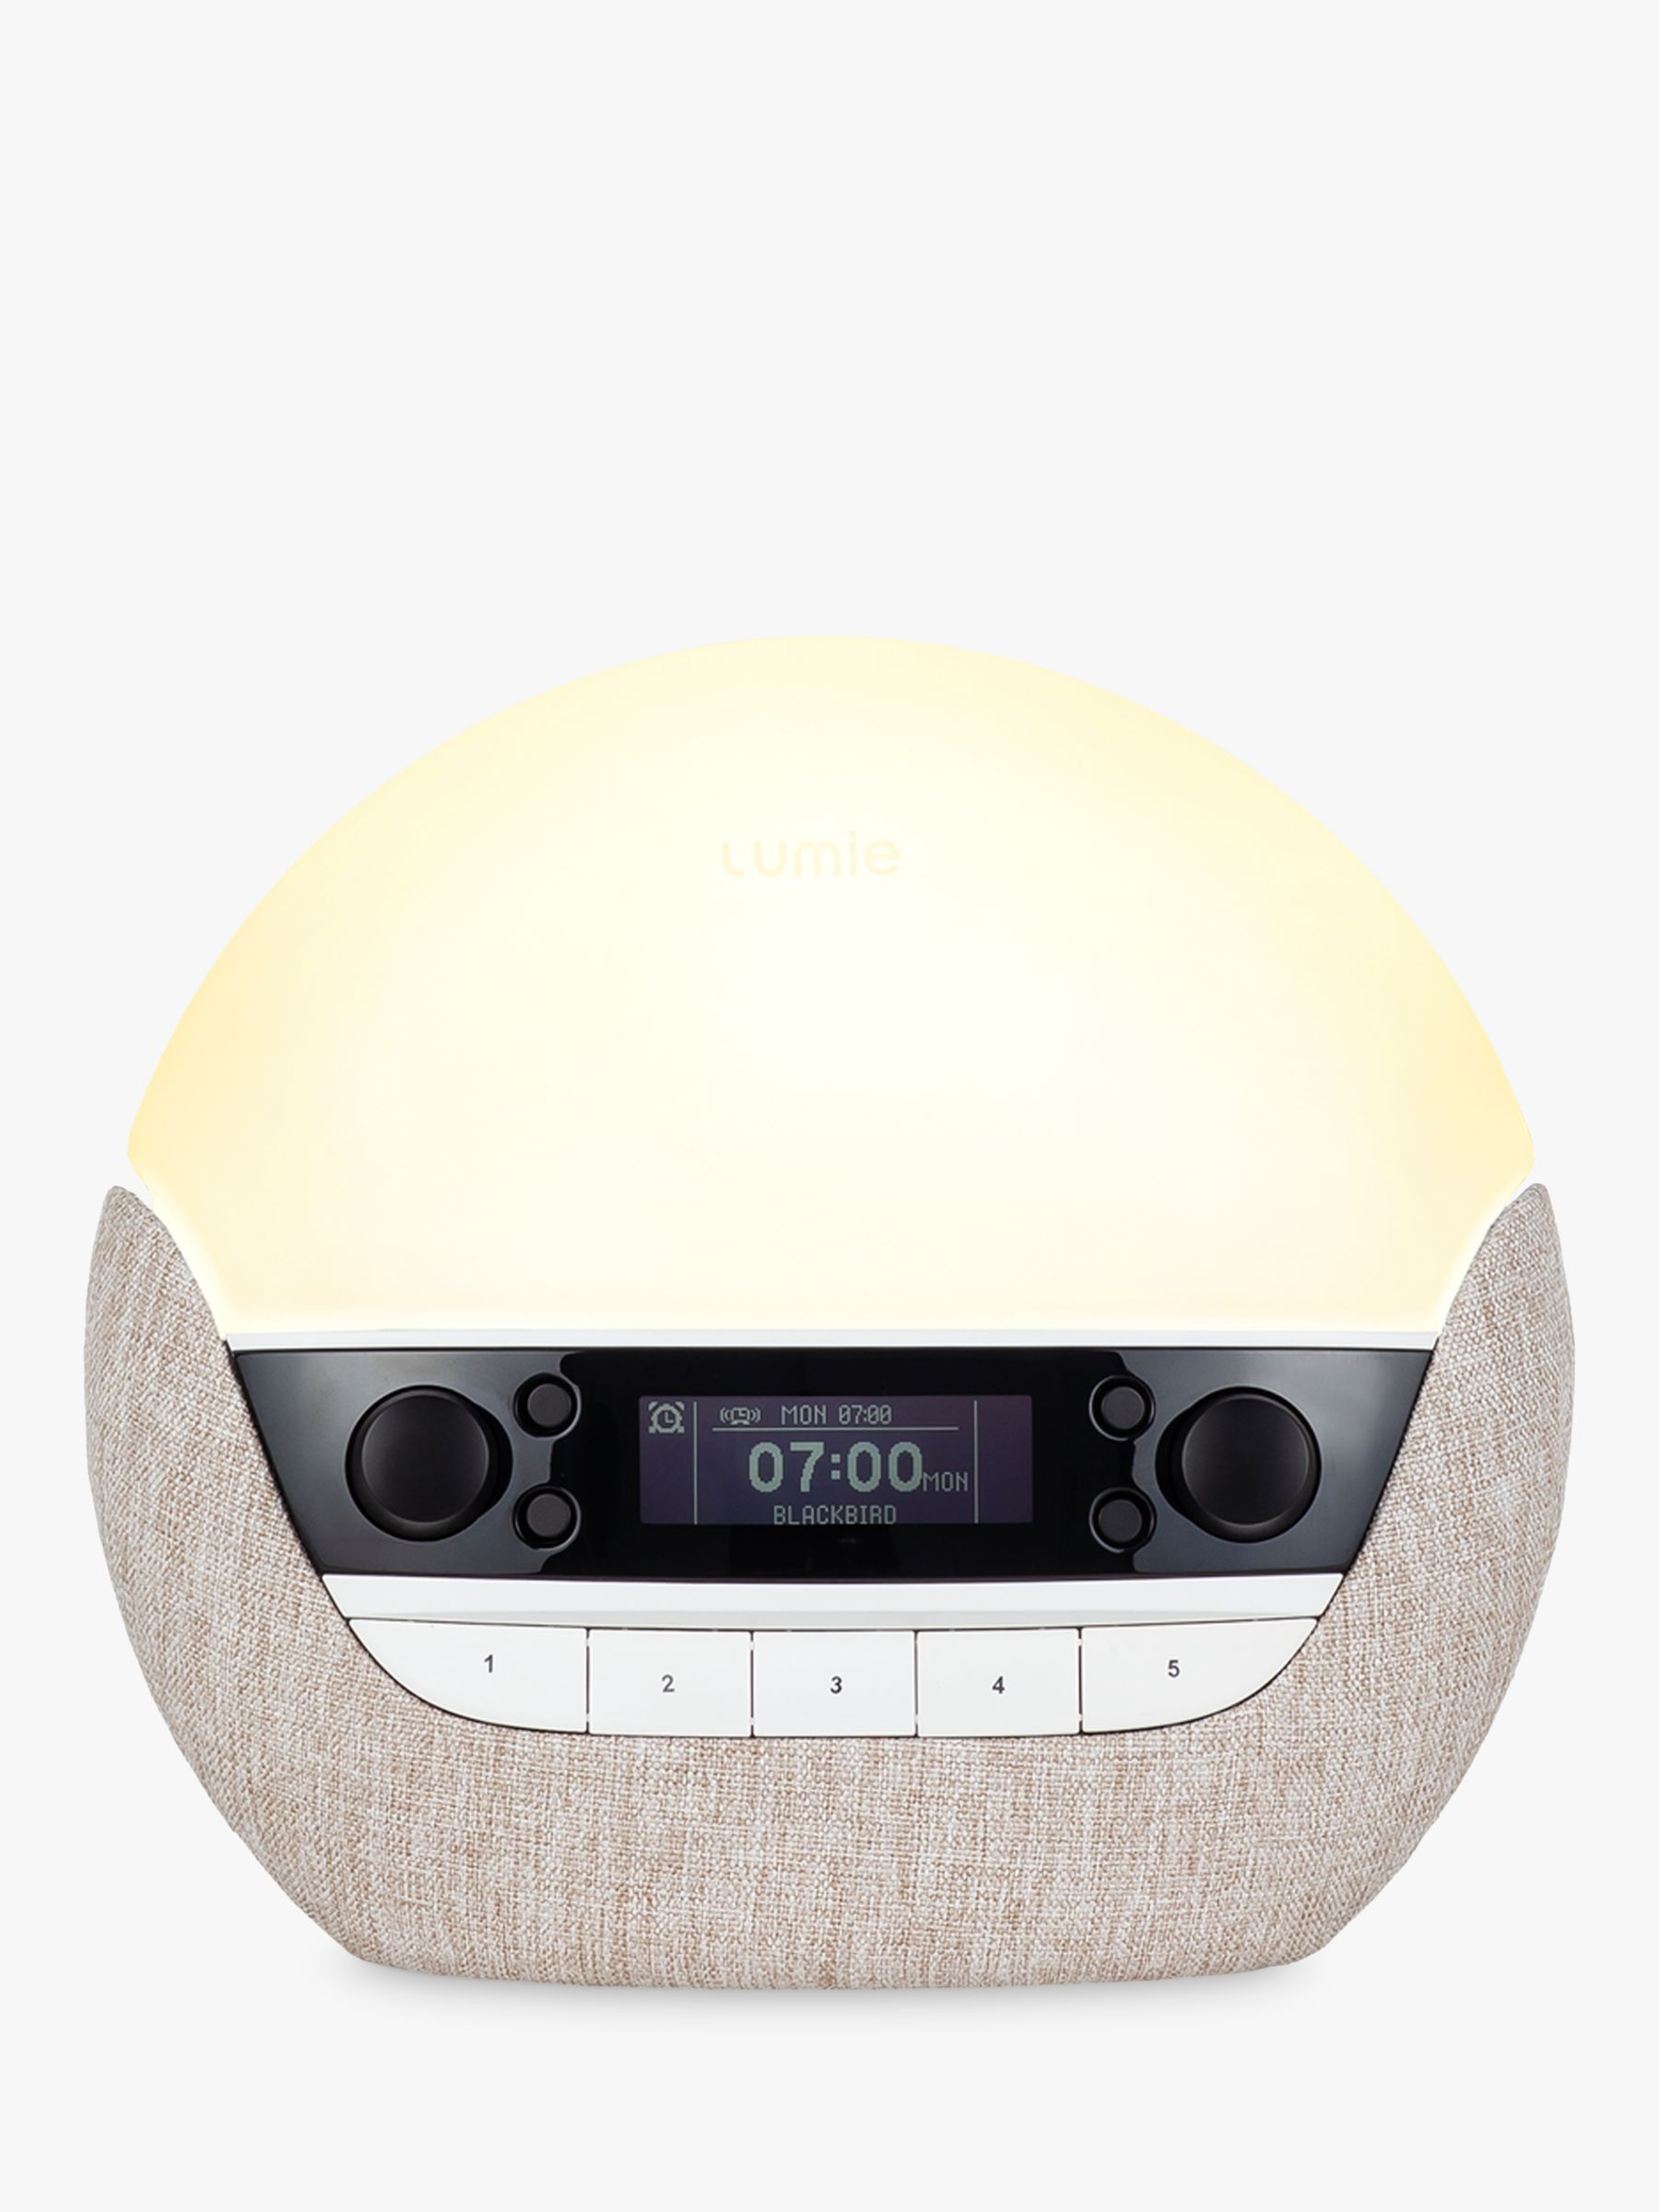 Lumie Lumie Bodyclock Luxe 700FM Wake Up to Daylight Table Lamp, Oatmeal